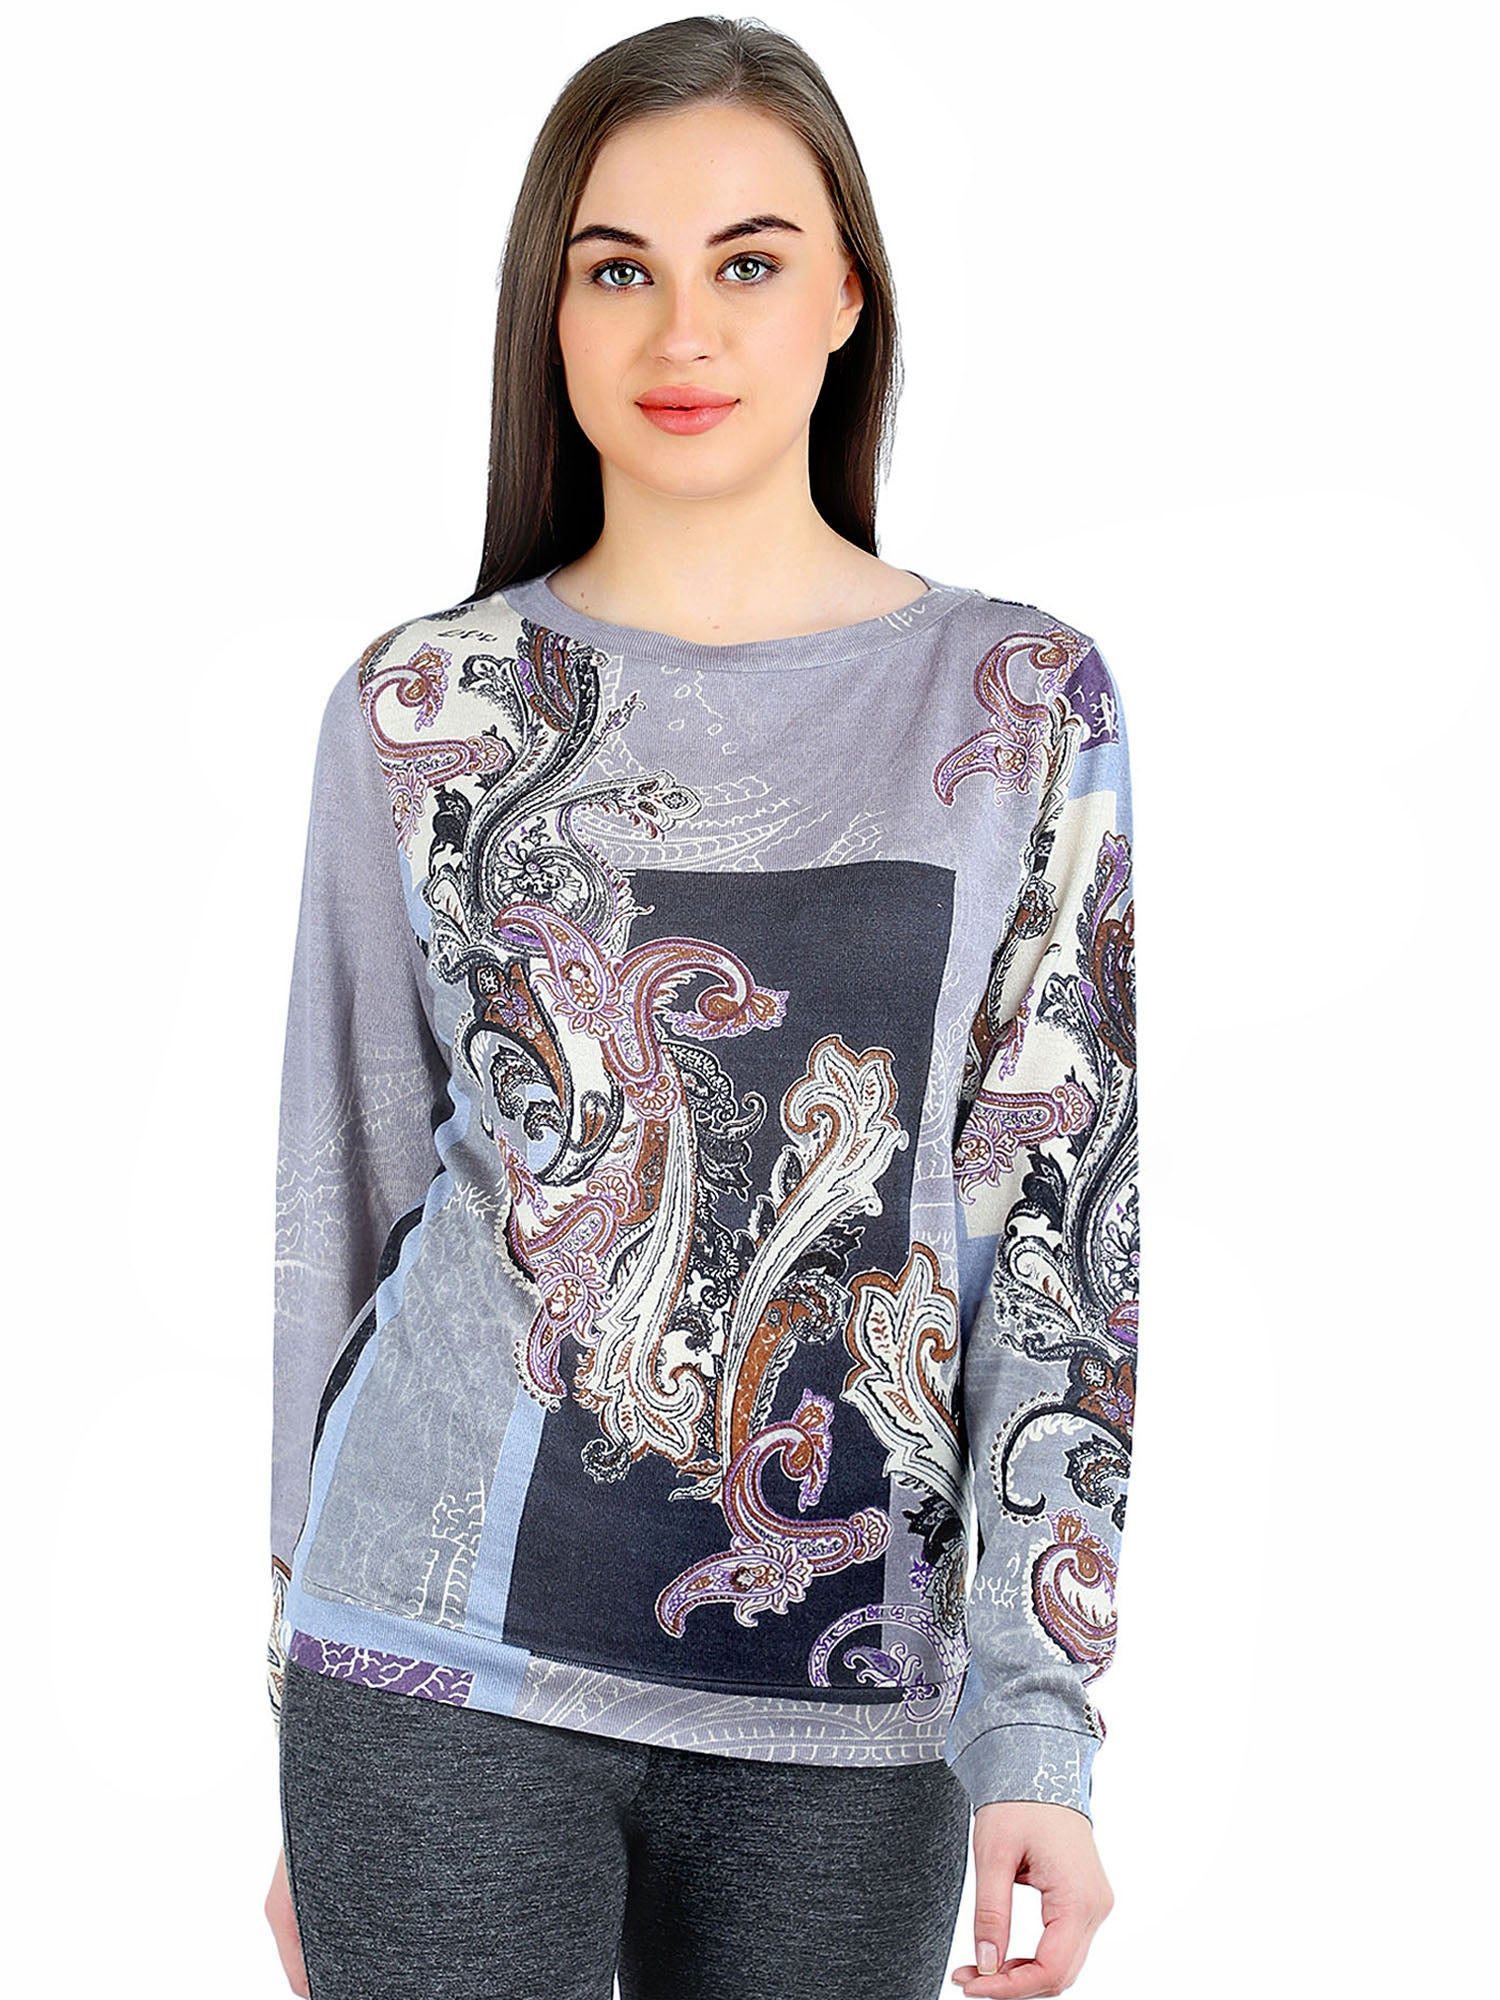 Pashma Purple Silk Wool Cashmere Sweatshirt with paisley print.